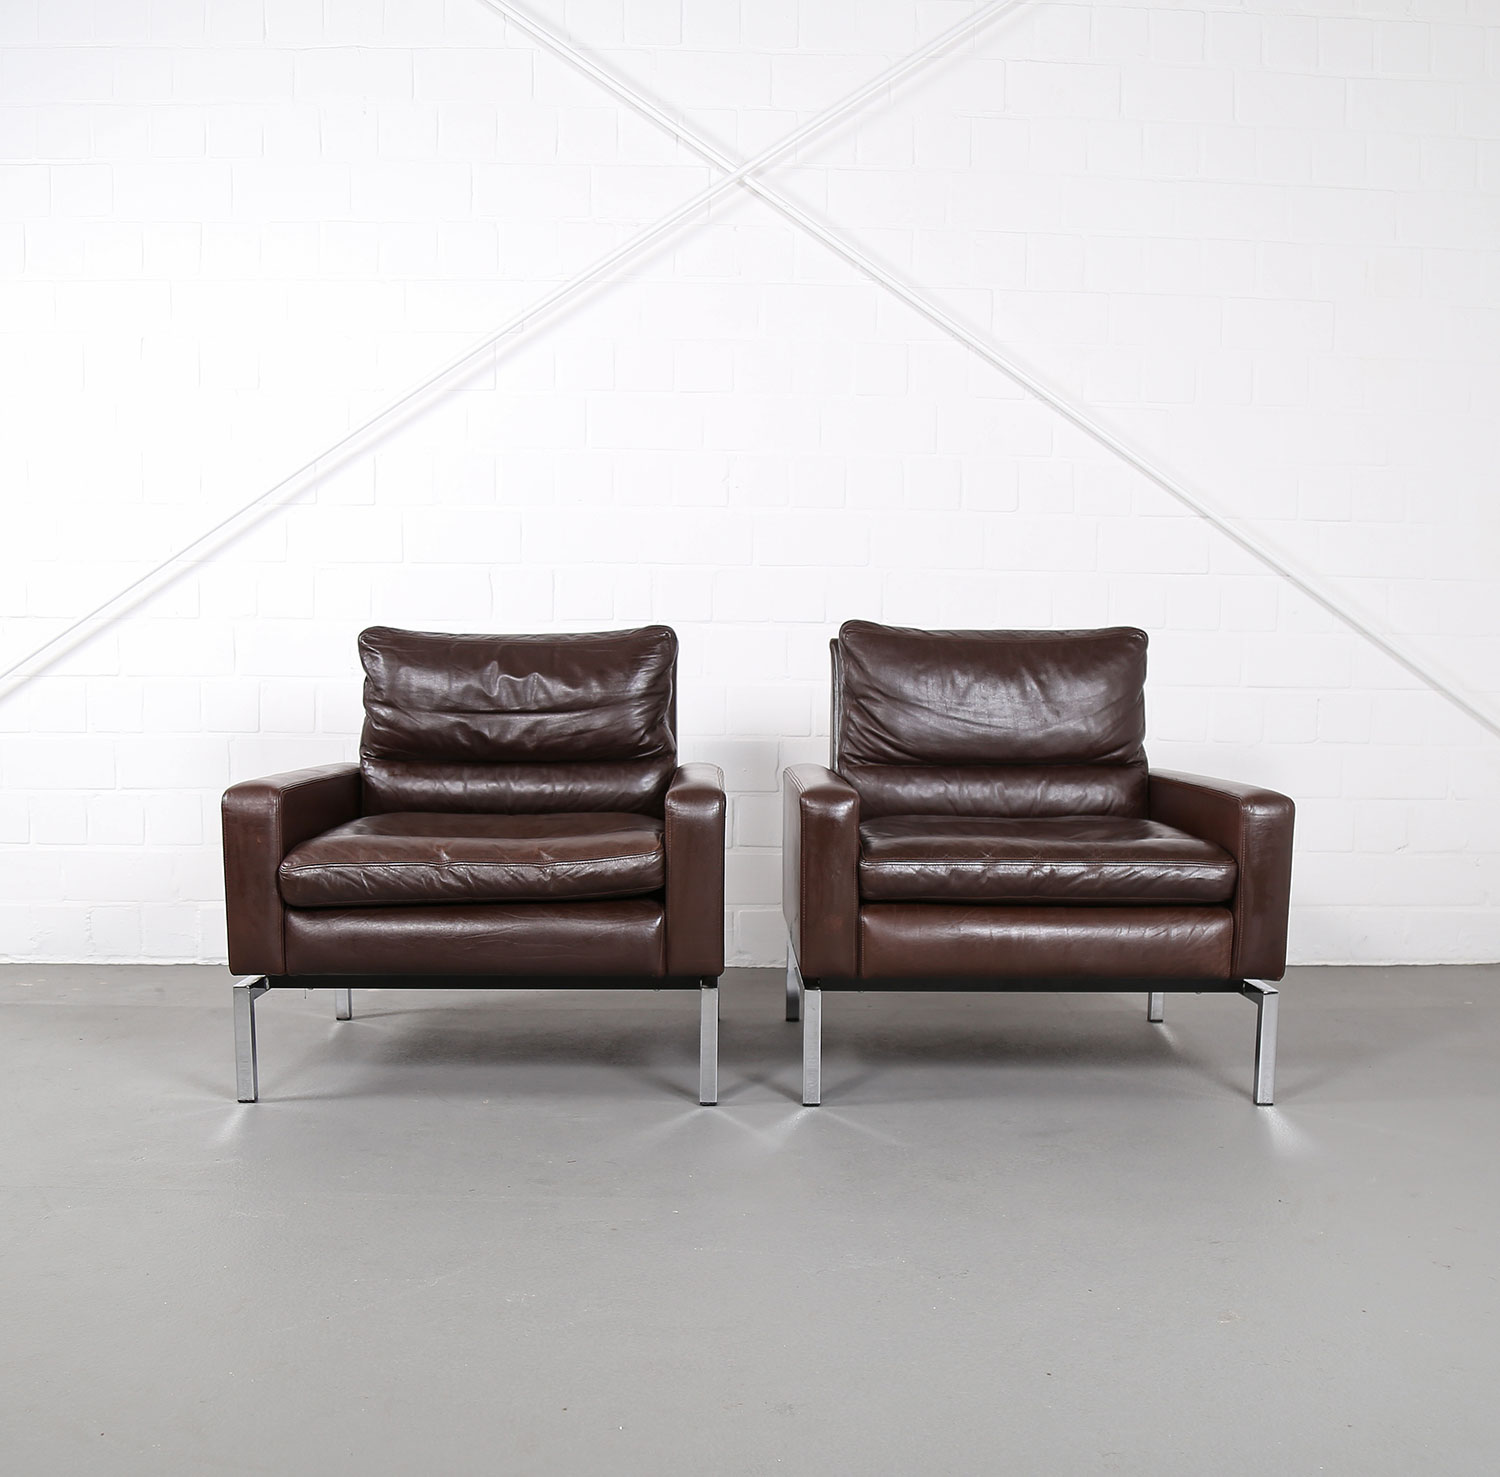 ... _800_leather_sofa_ledersofa_70er_design_designklassiker_gebraucht_02